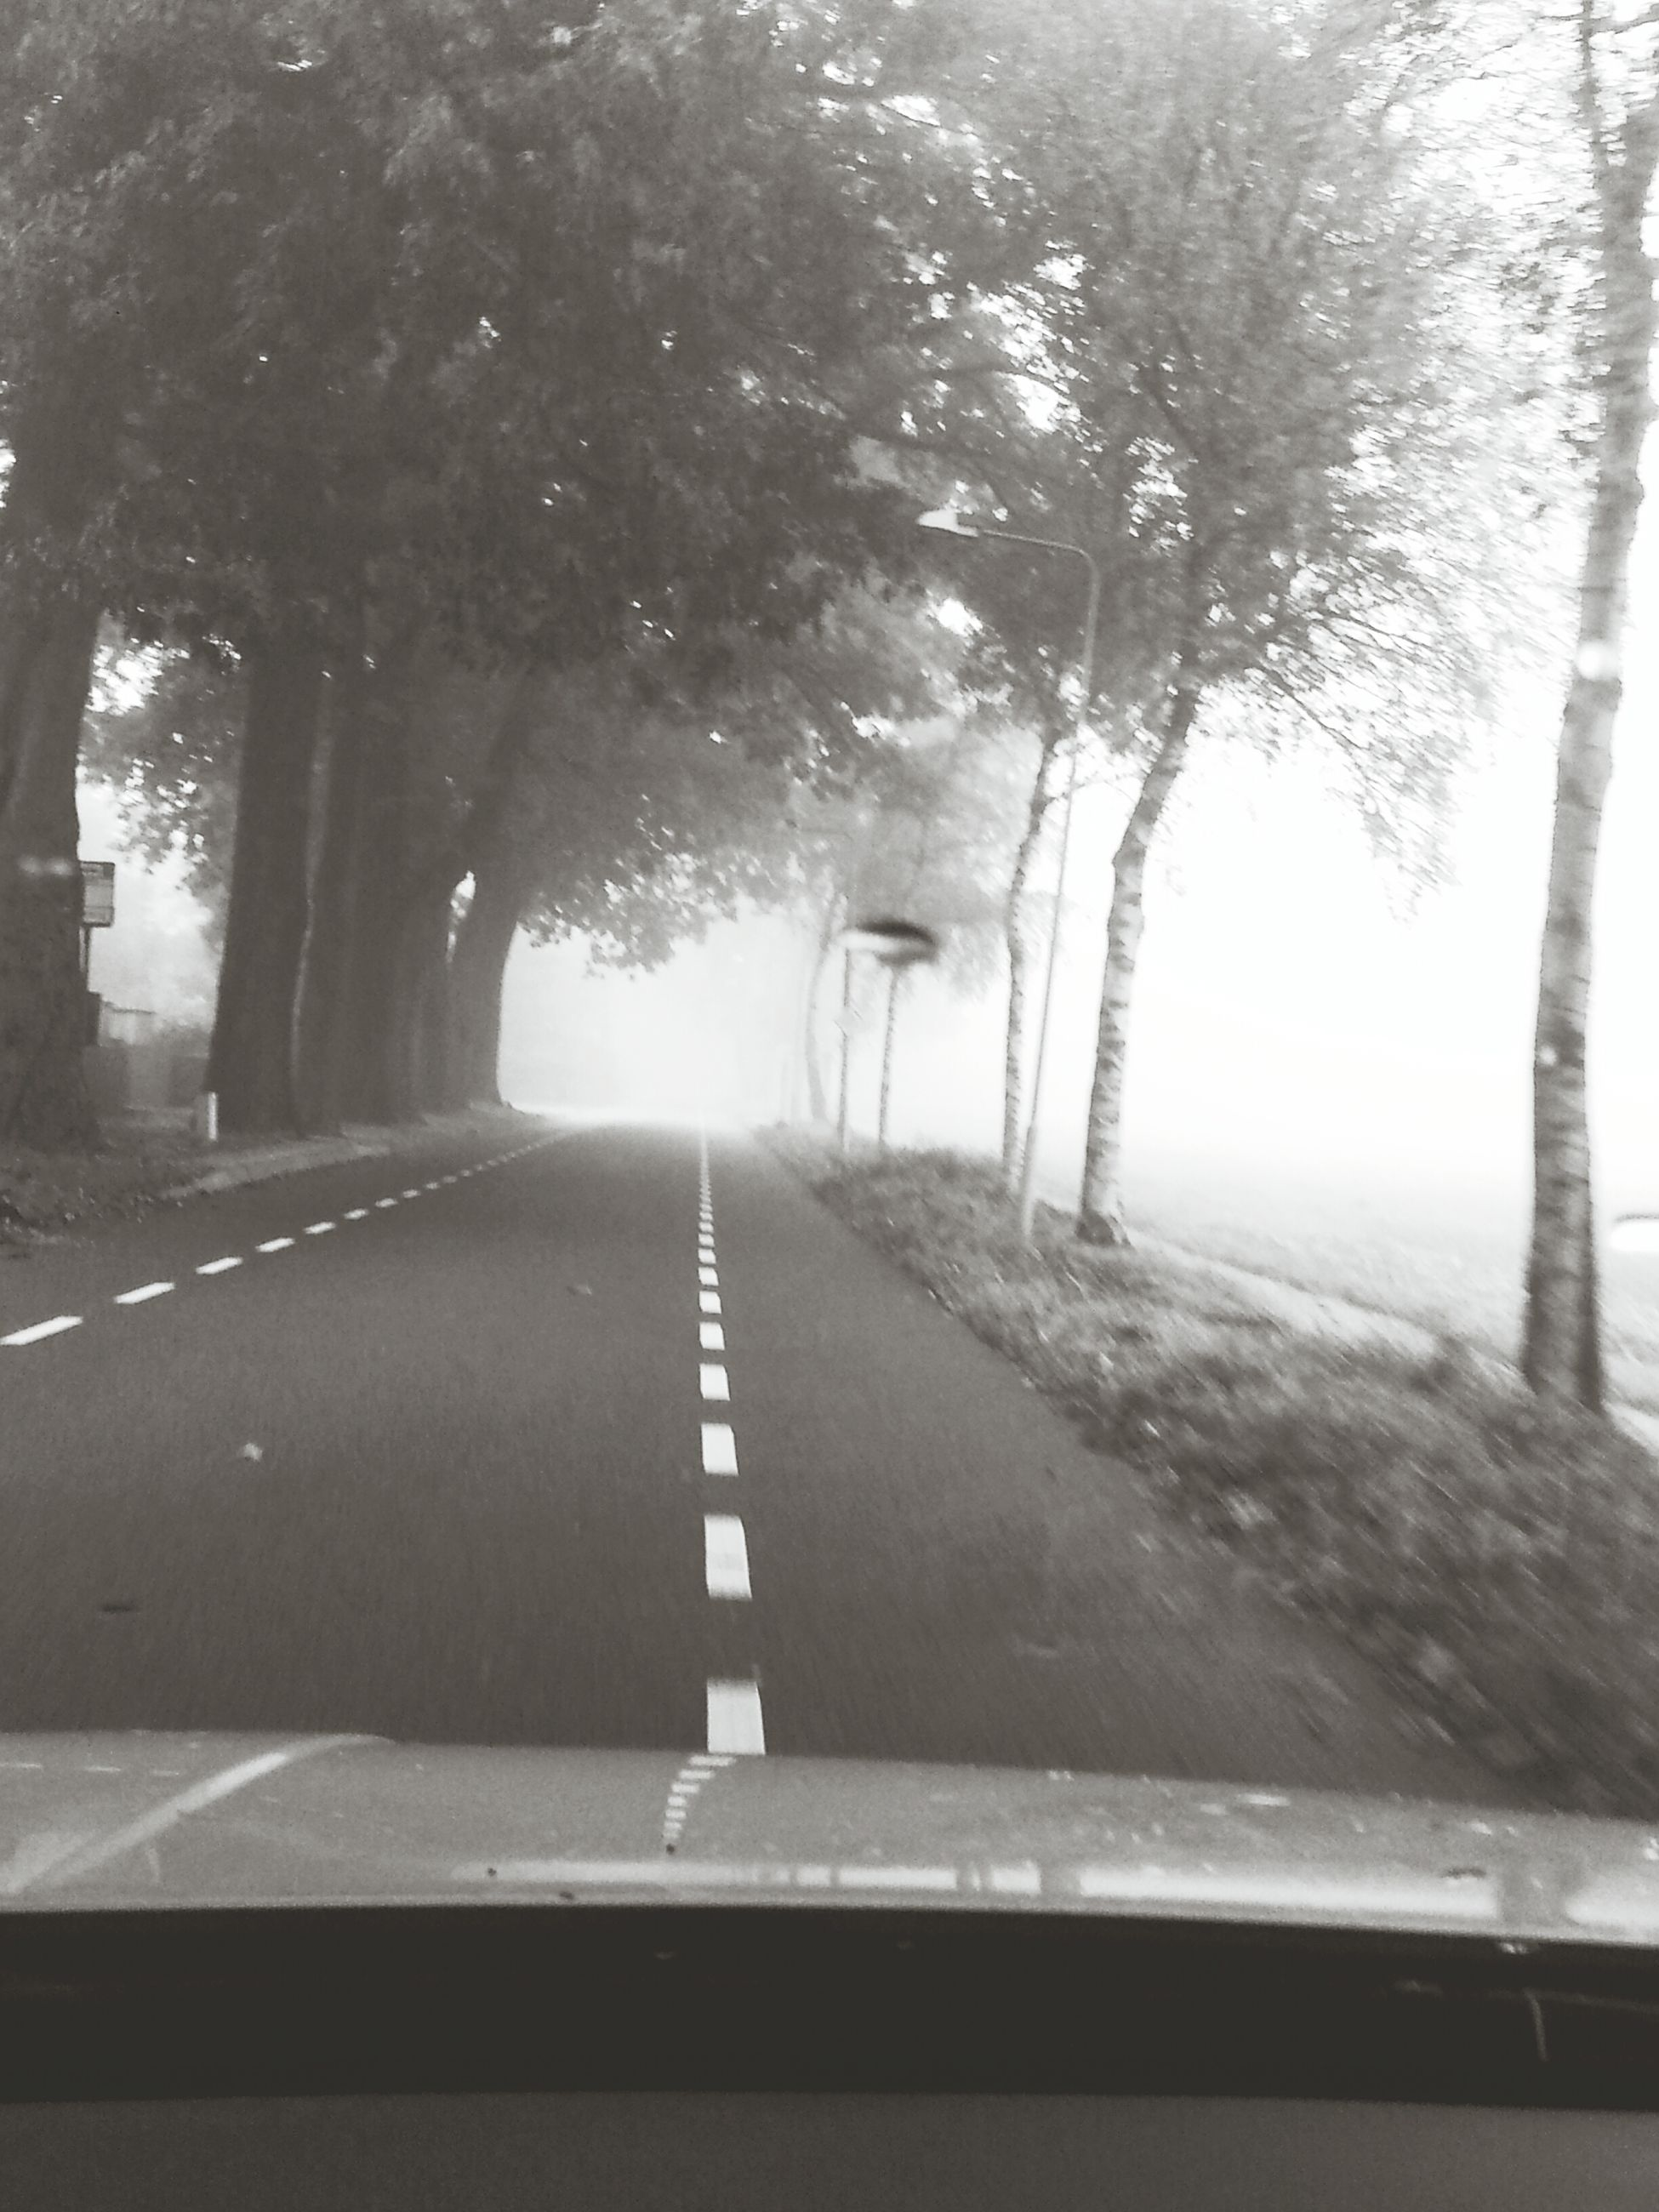 the way forward, transportation, diminishing perspective, tree, road, vanishing point, road marking, empty road, country road, empty, nature, long, car, mode of transport, treelined, day, no people, street, growth, sky